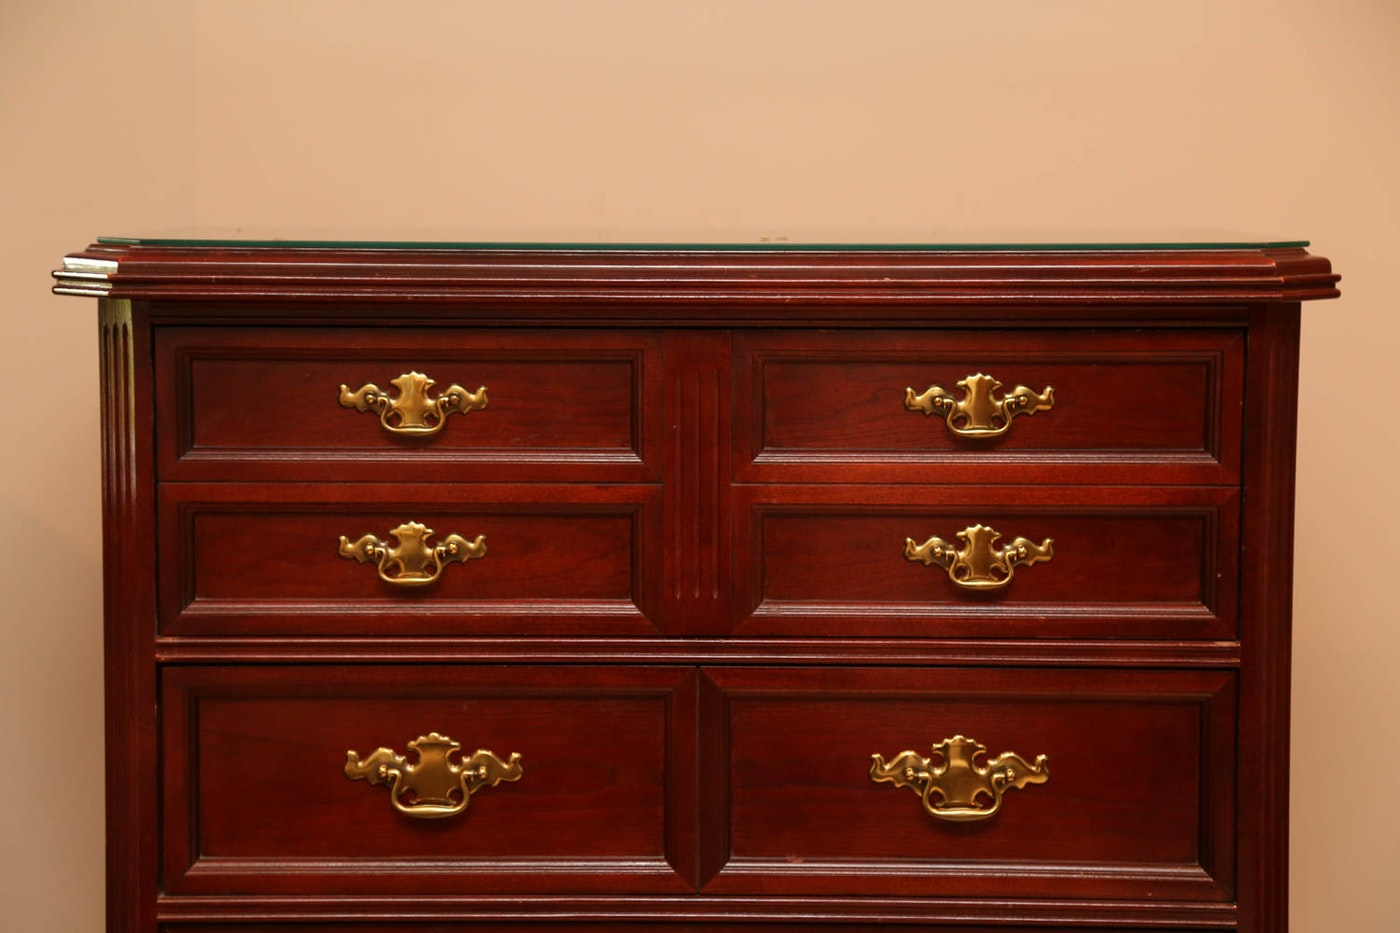 #400D04 Large Traditional Cherry Chest Of Drawers : EBTH with 1400x933 px of Best Traditional Chest Of Drawers 9331400 image @ avoidforclosure.info